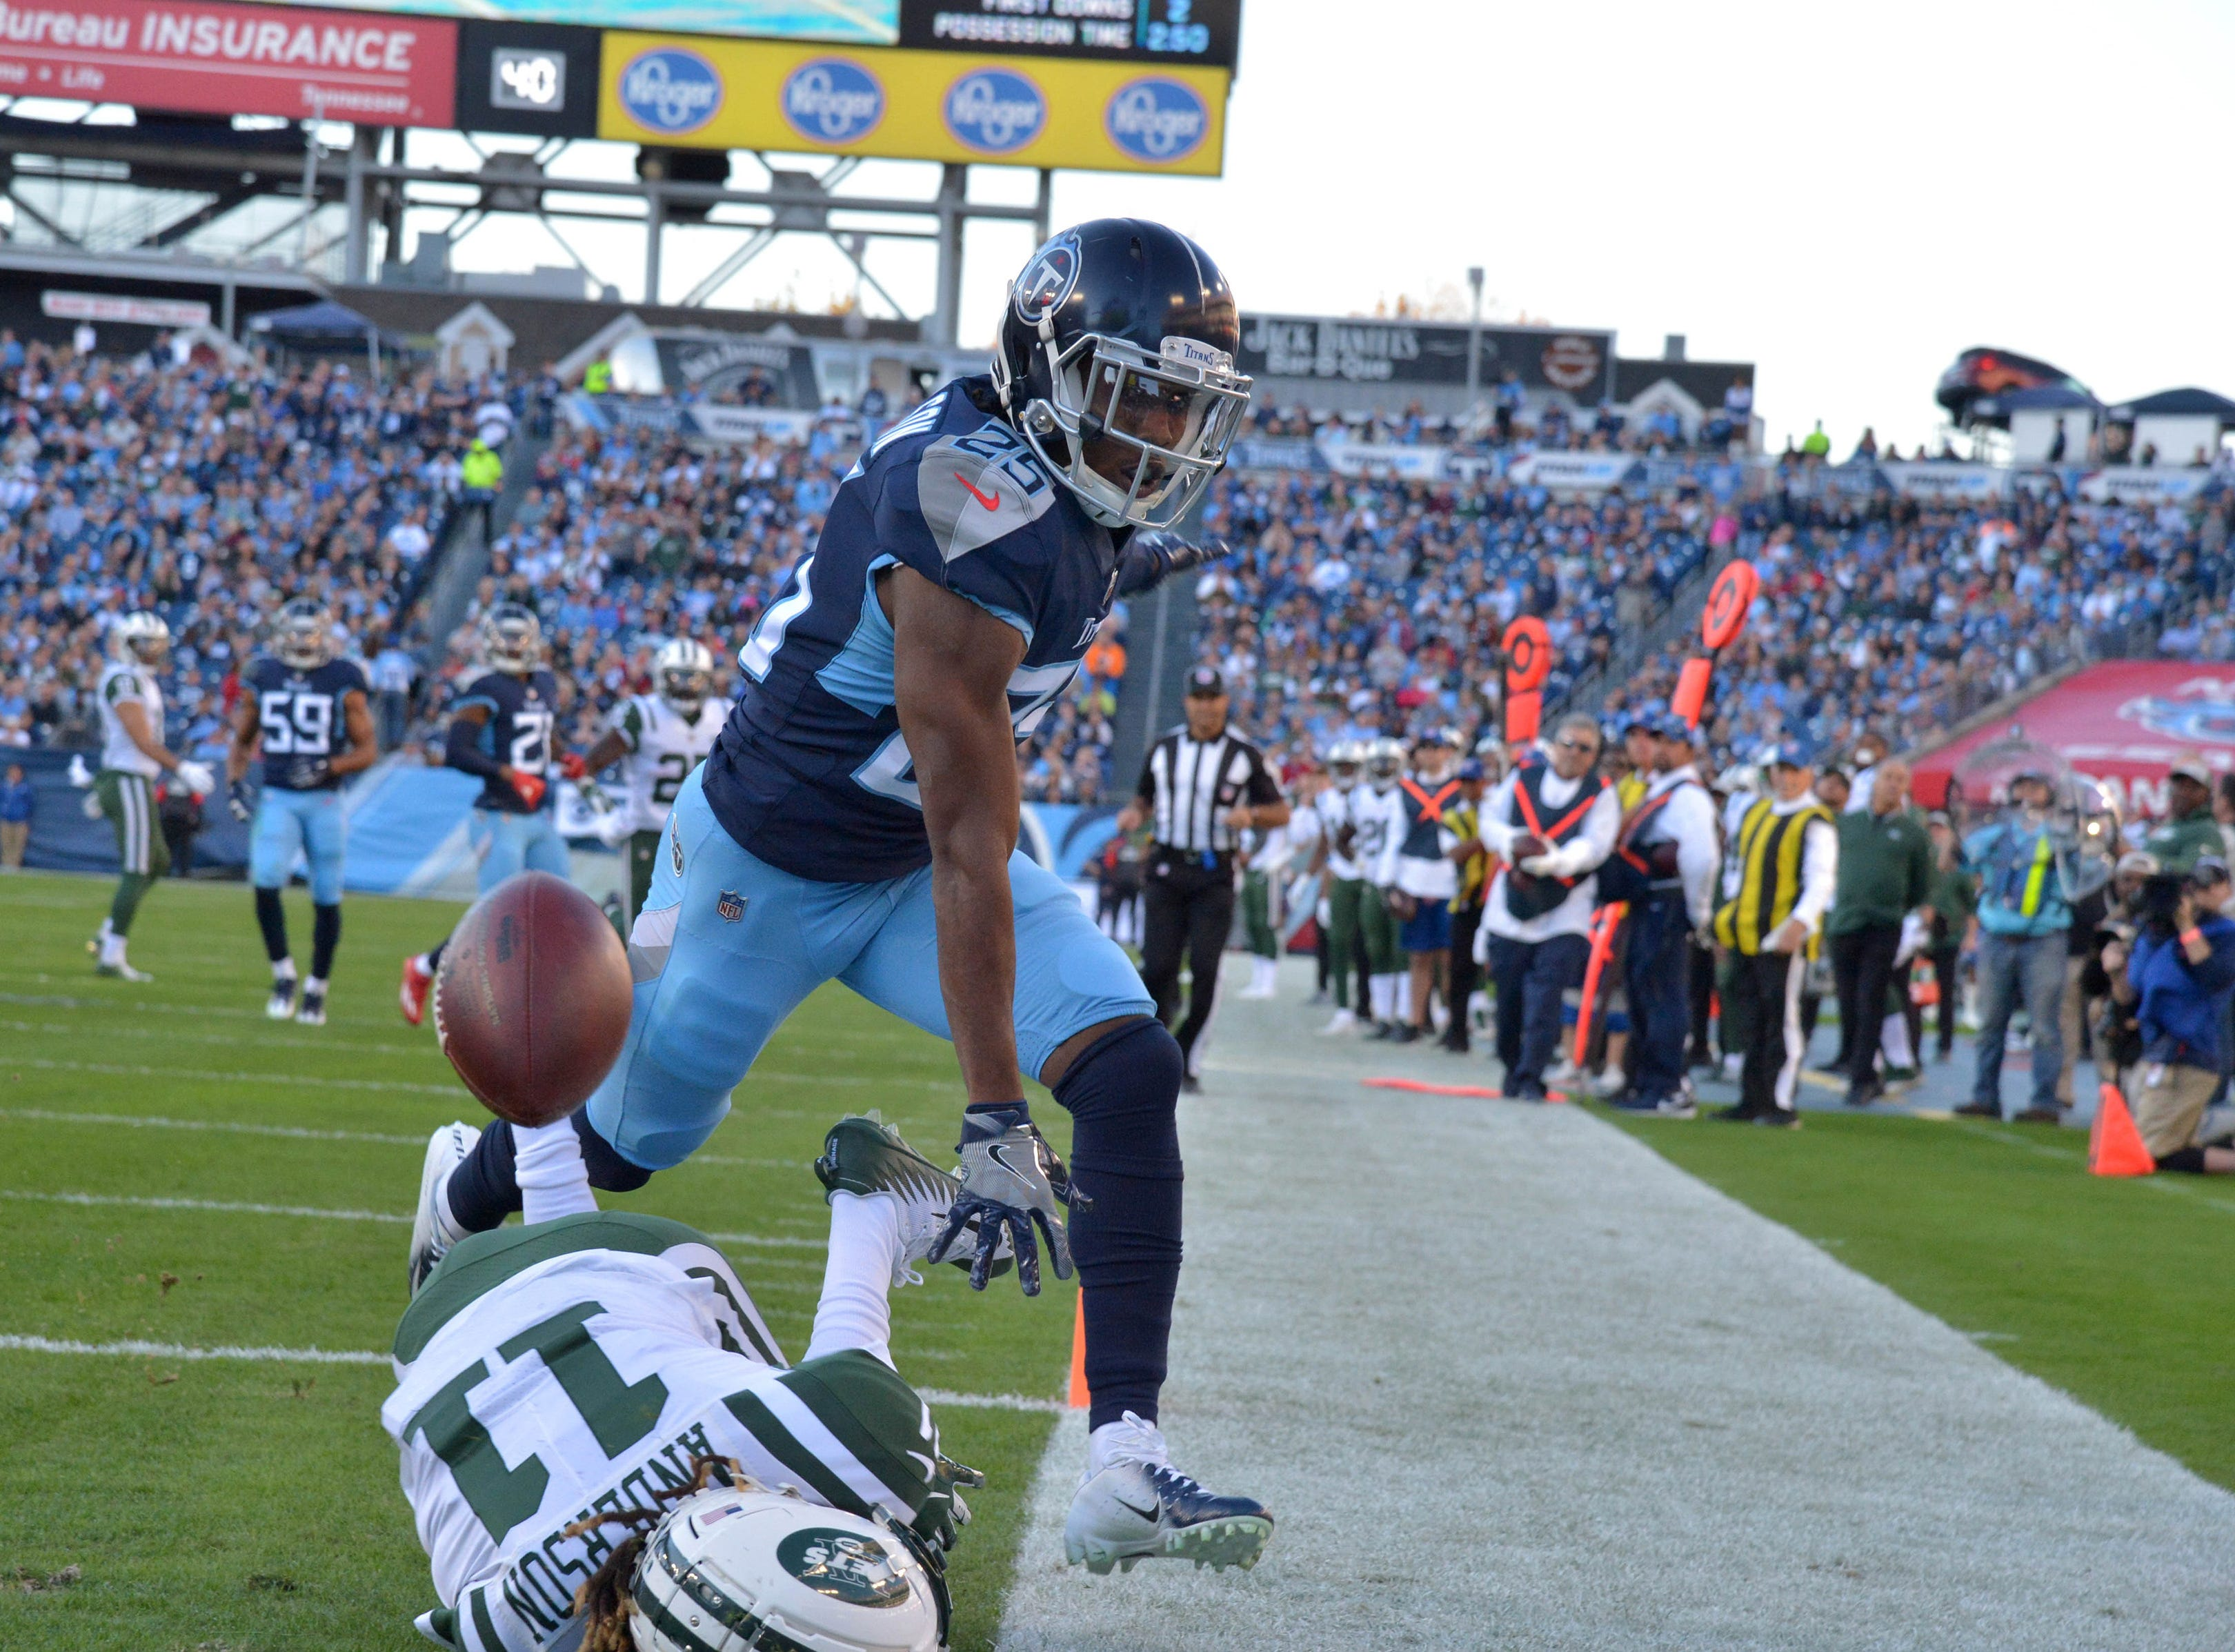 Titans cornerback Adoree' Jackson (25) breaks up a pass intended for New York Jets wide receiver Robby Anderson.